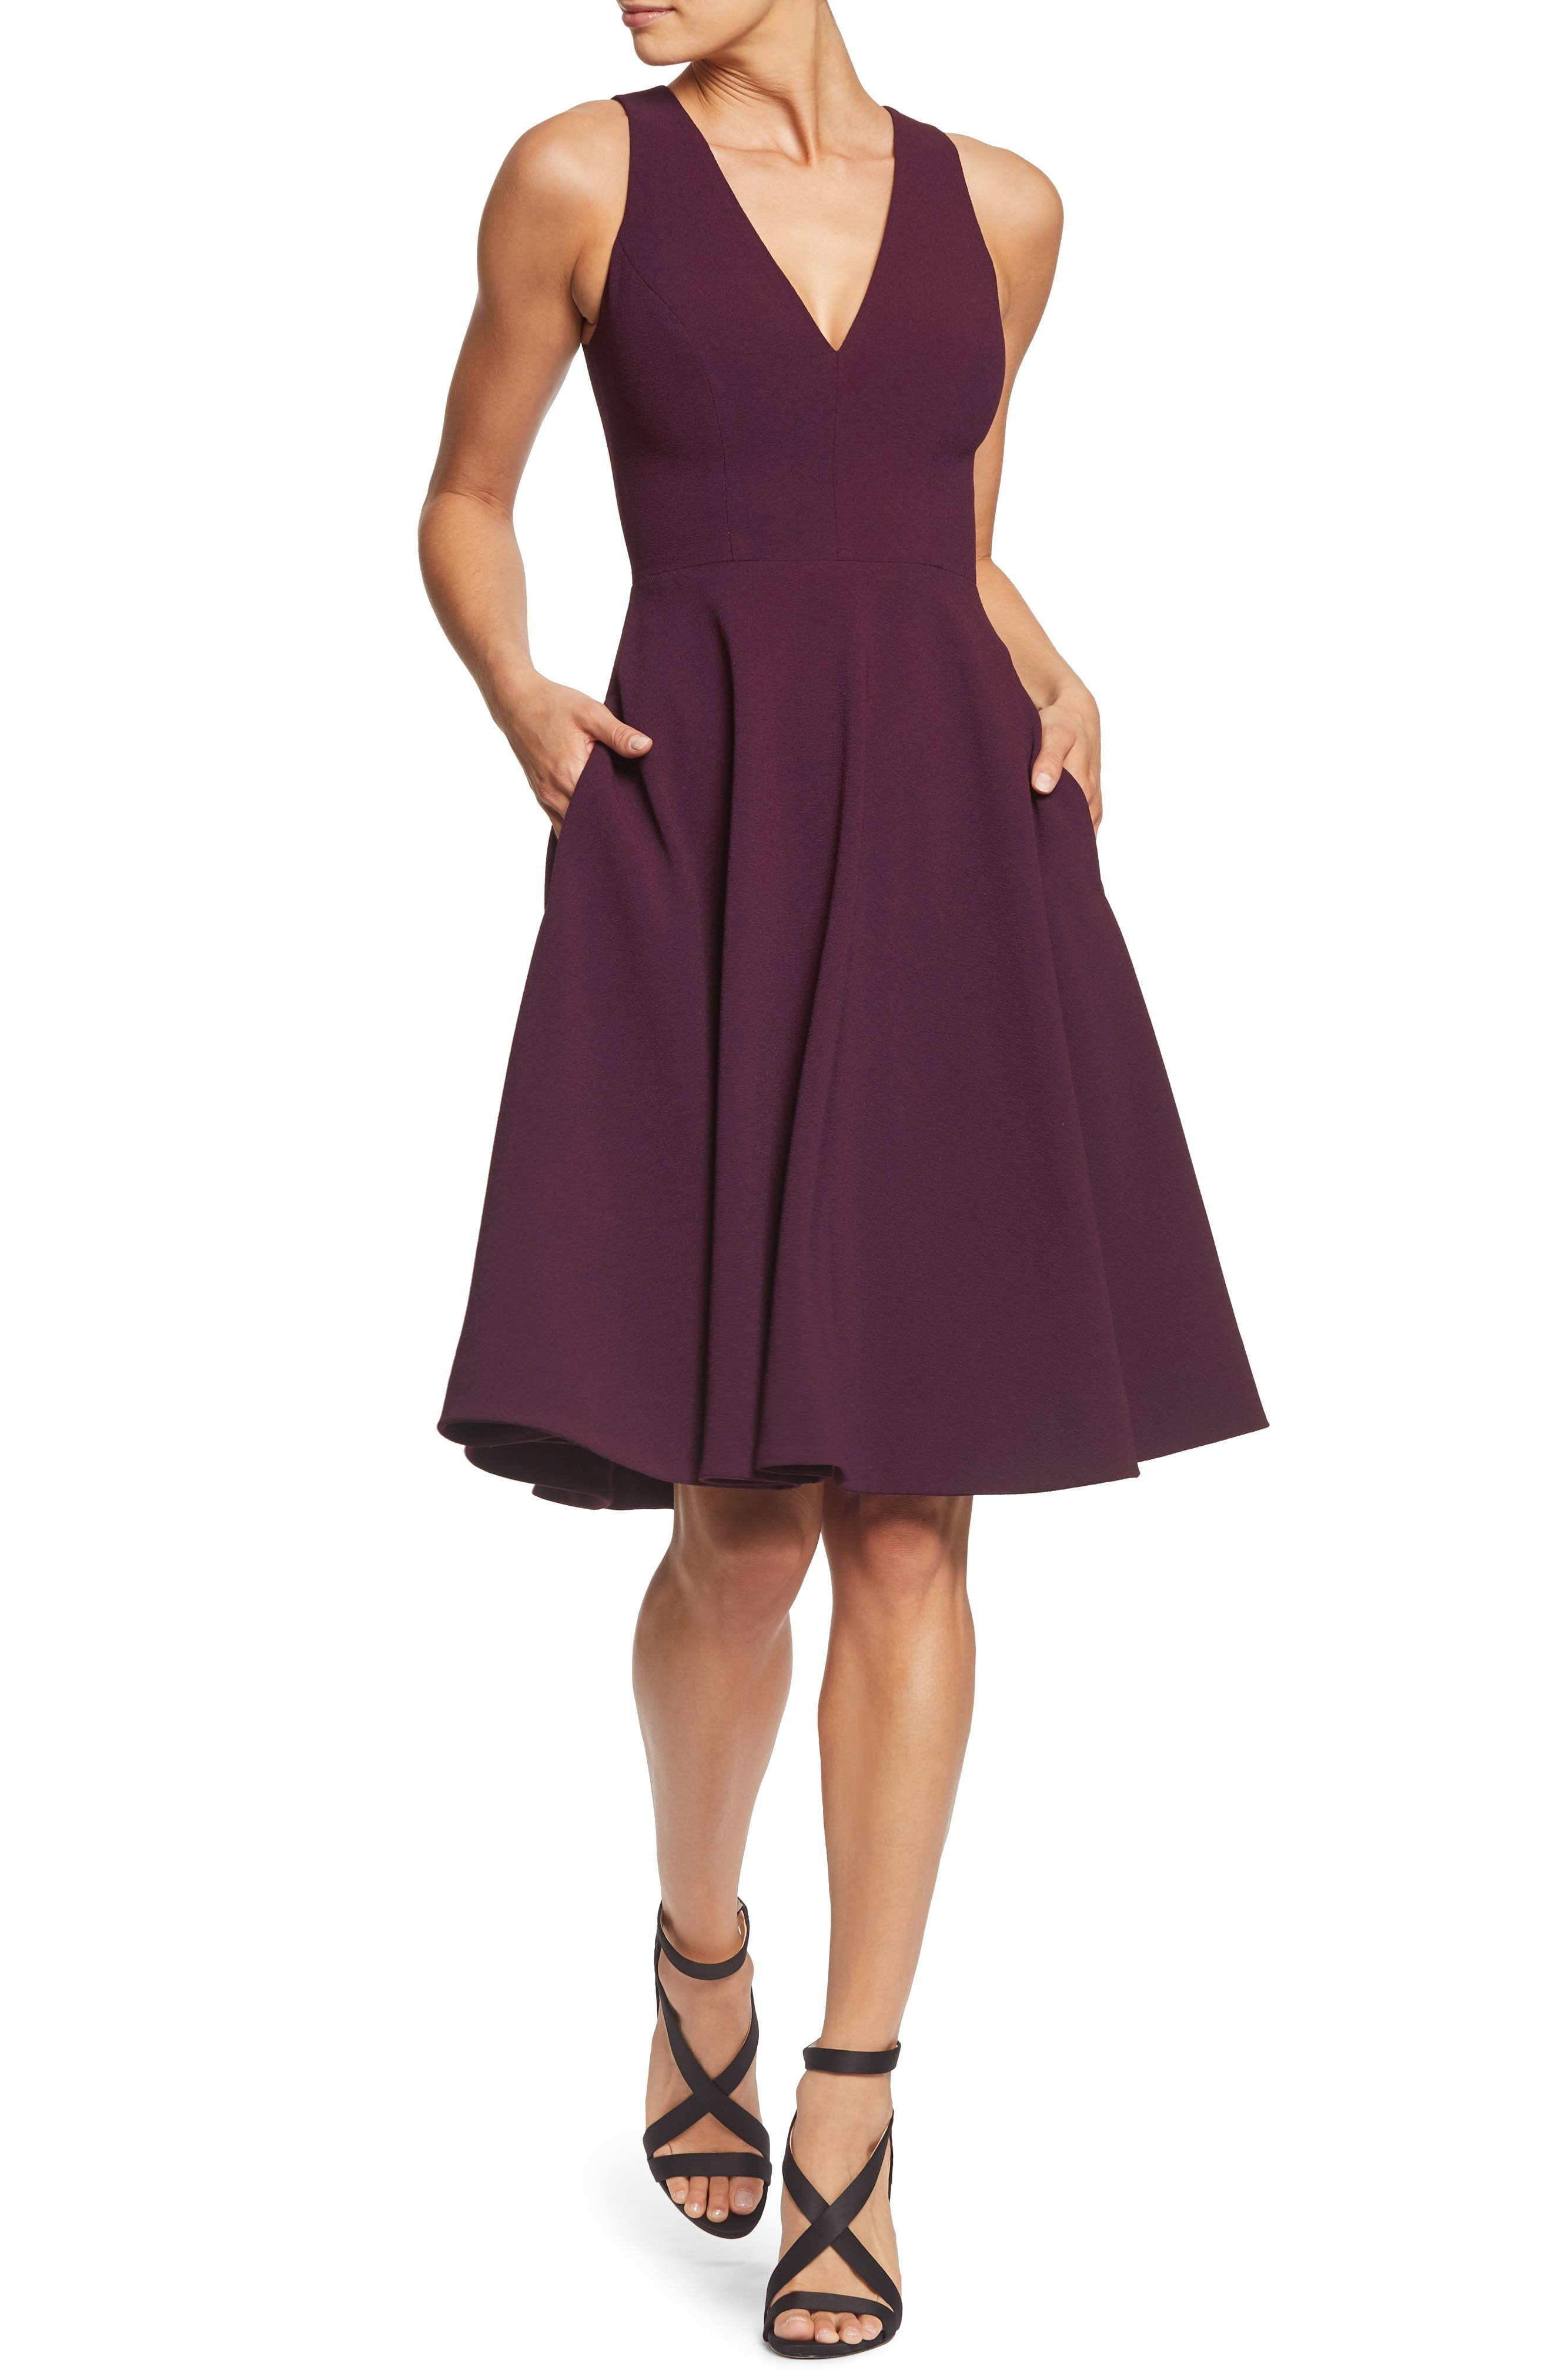 DRESS THE POPULATION Catalina Tea Length Fit & Flare Dress, Main, color, PLUM